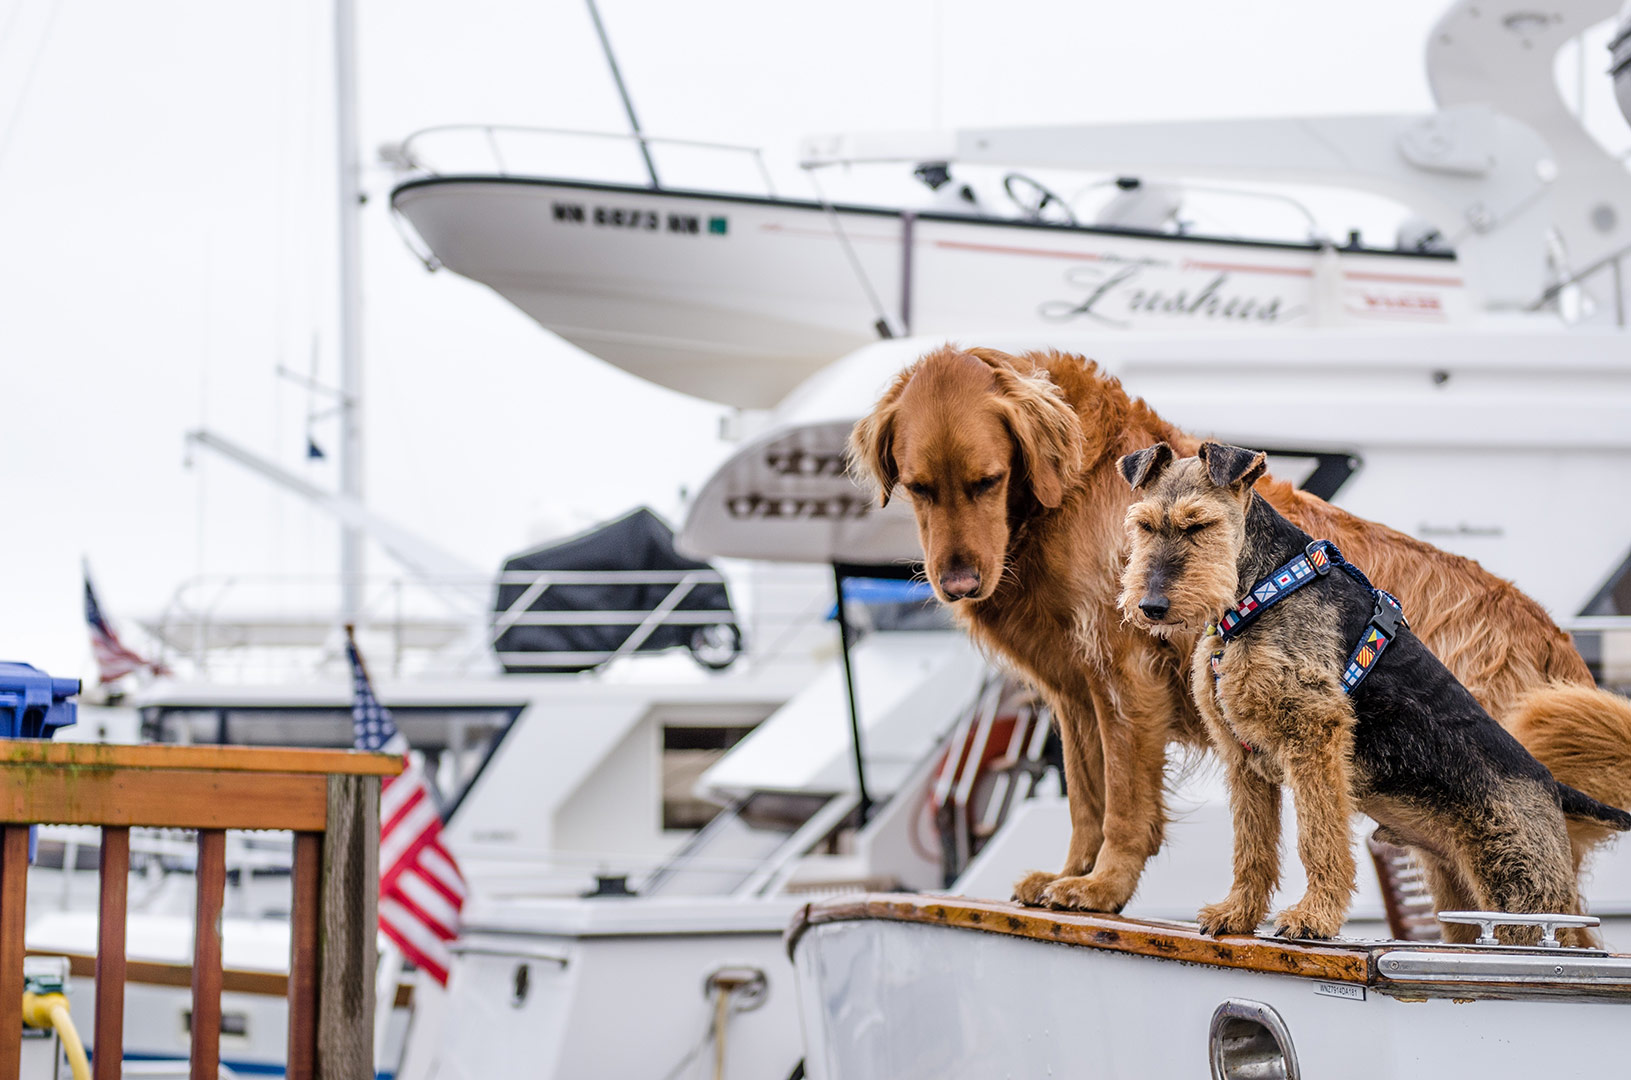 two friendly dogs sitting on a boat looking into the water